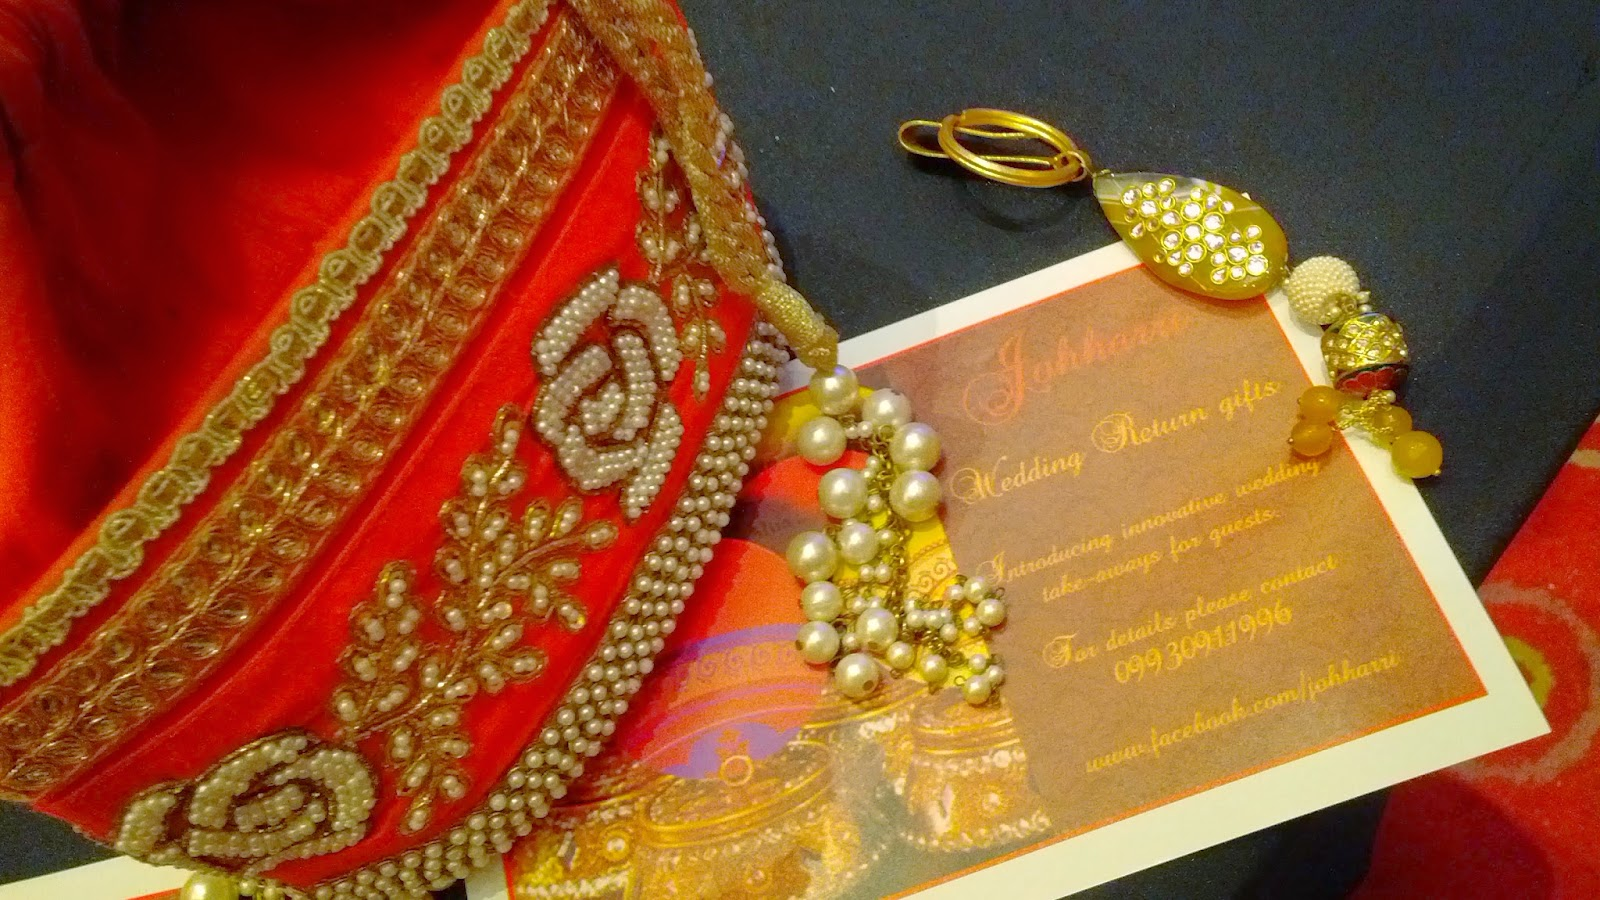 Wedding Gift Bags Mumbai : The counter for wedding gifts for guests..some wonderful designs. Is ...